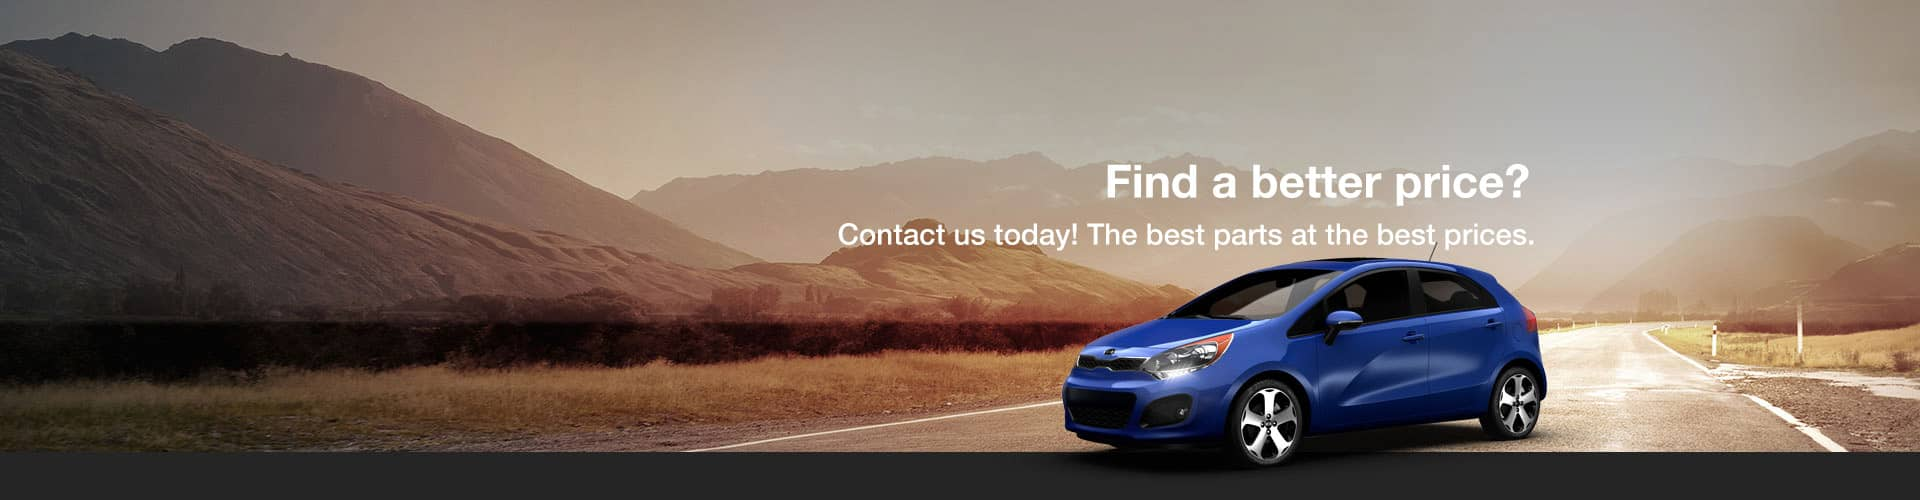 Best parts at the best prices. OEM Kia parts and accessories